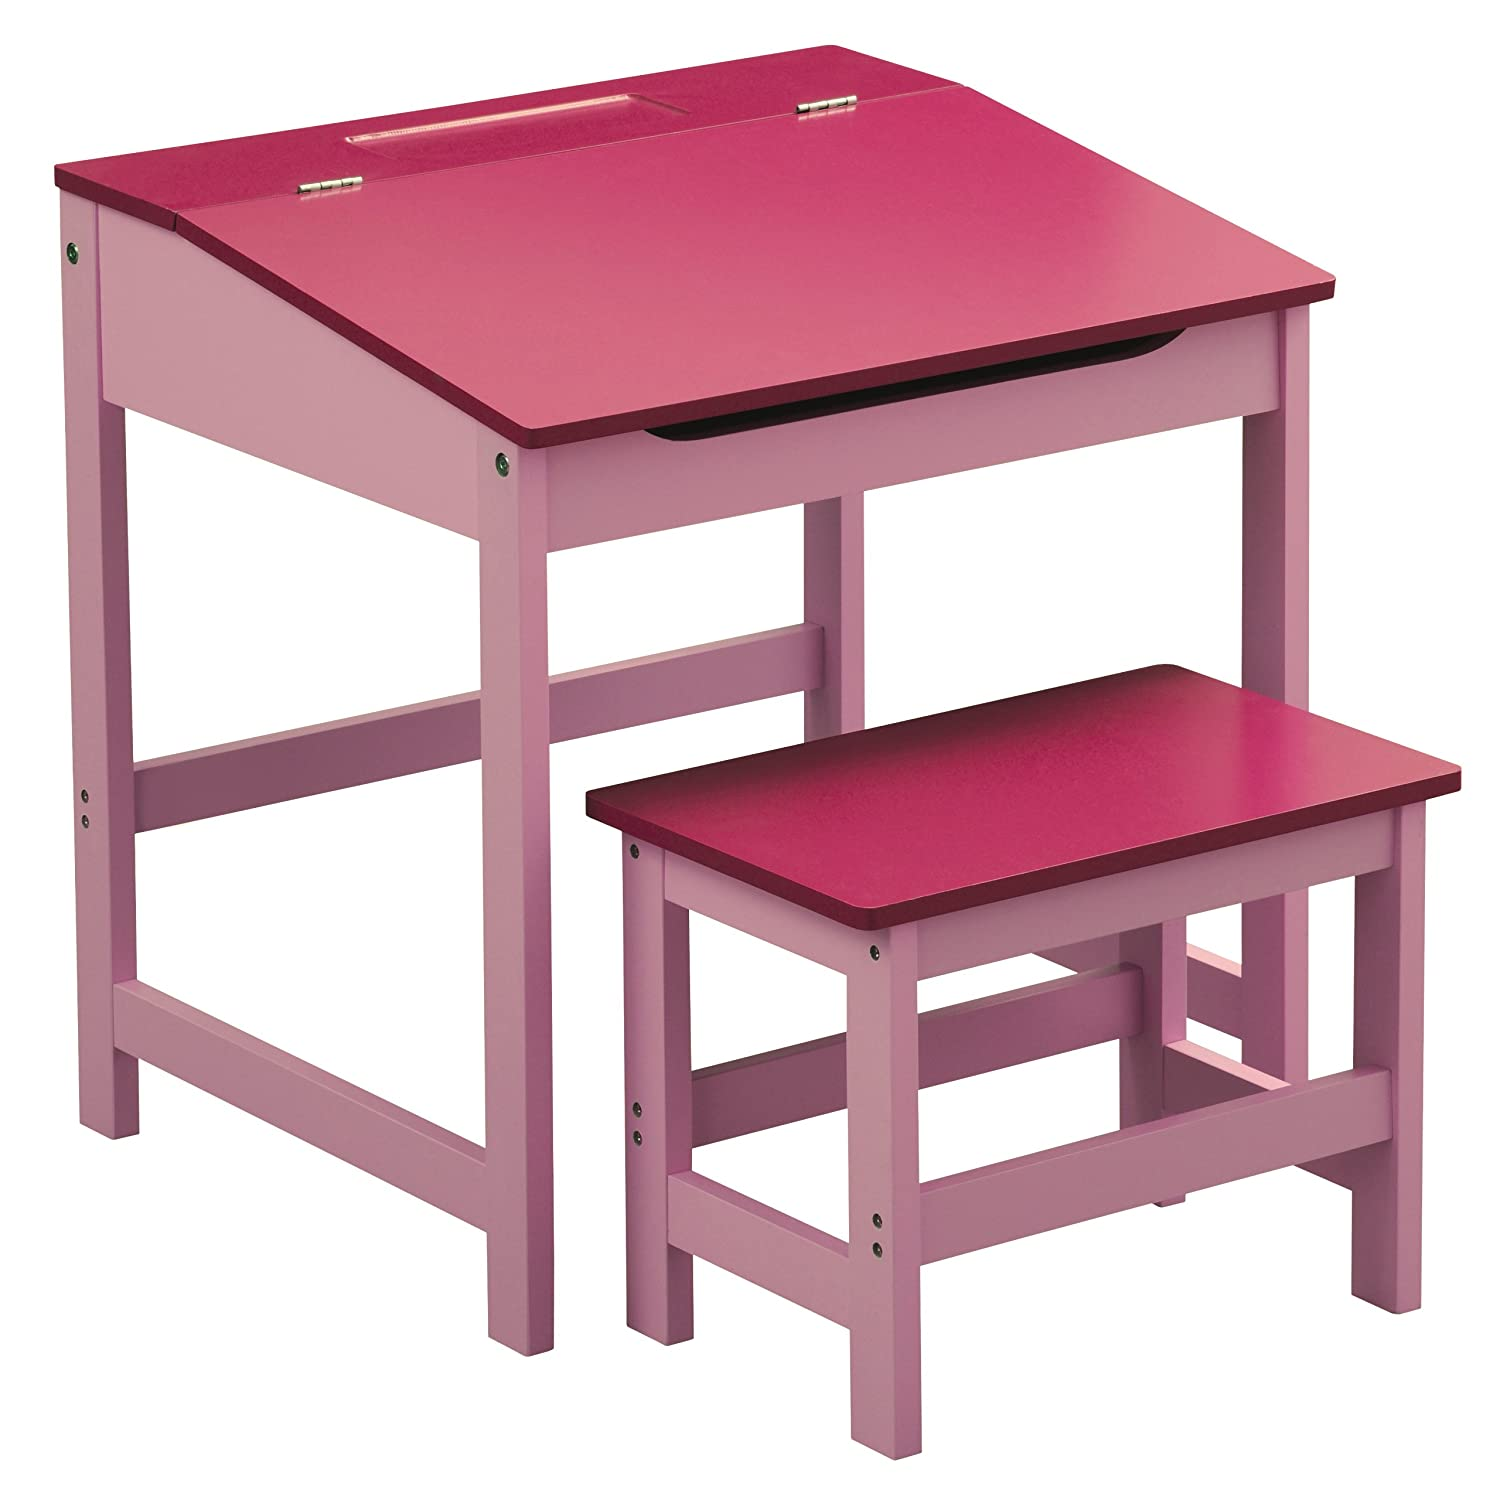 Premier Housewares Children s Desk and Stool Set Pink Amazon